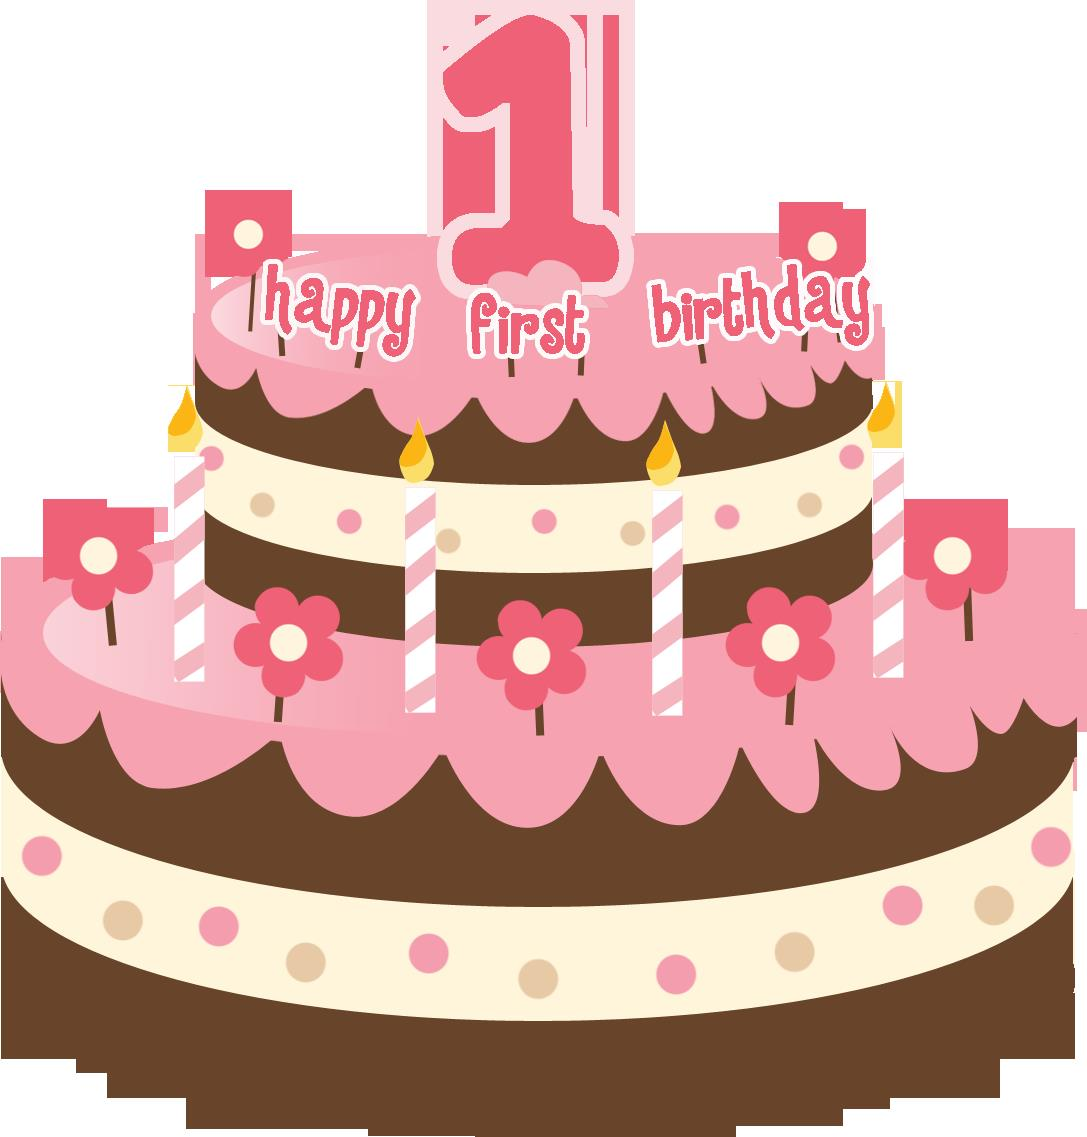 birthday cake clip art png ; Birthday-Cake-PNG-Clipart